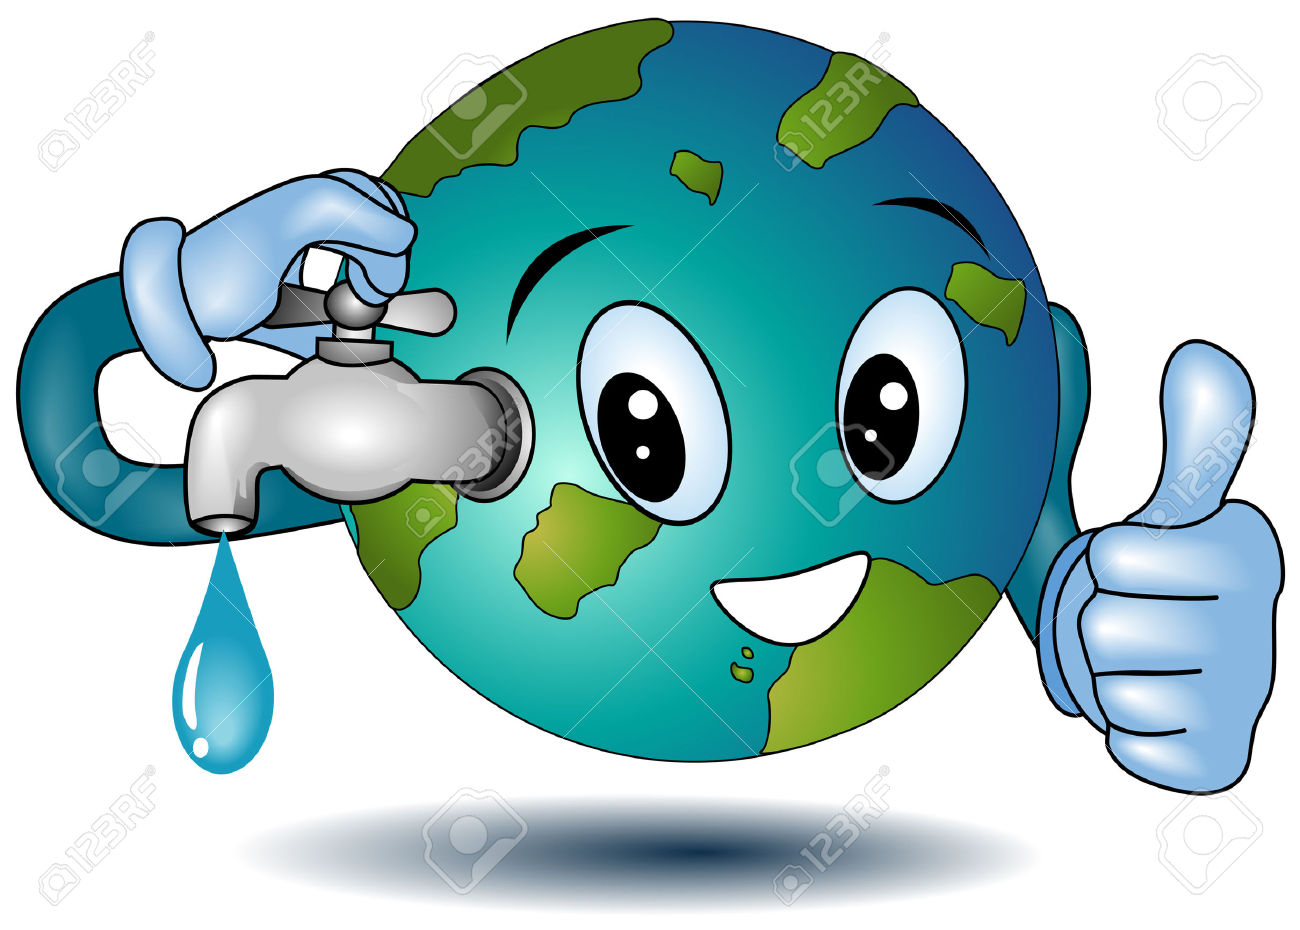 World without water clipart.